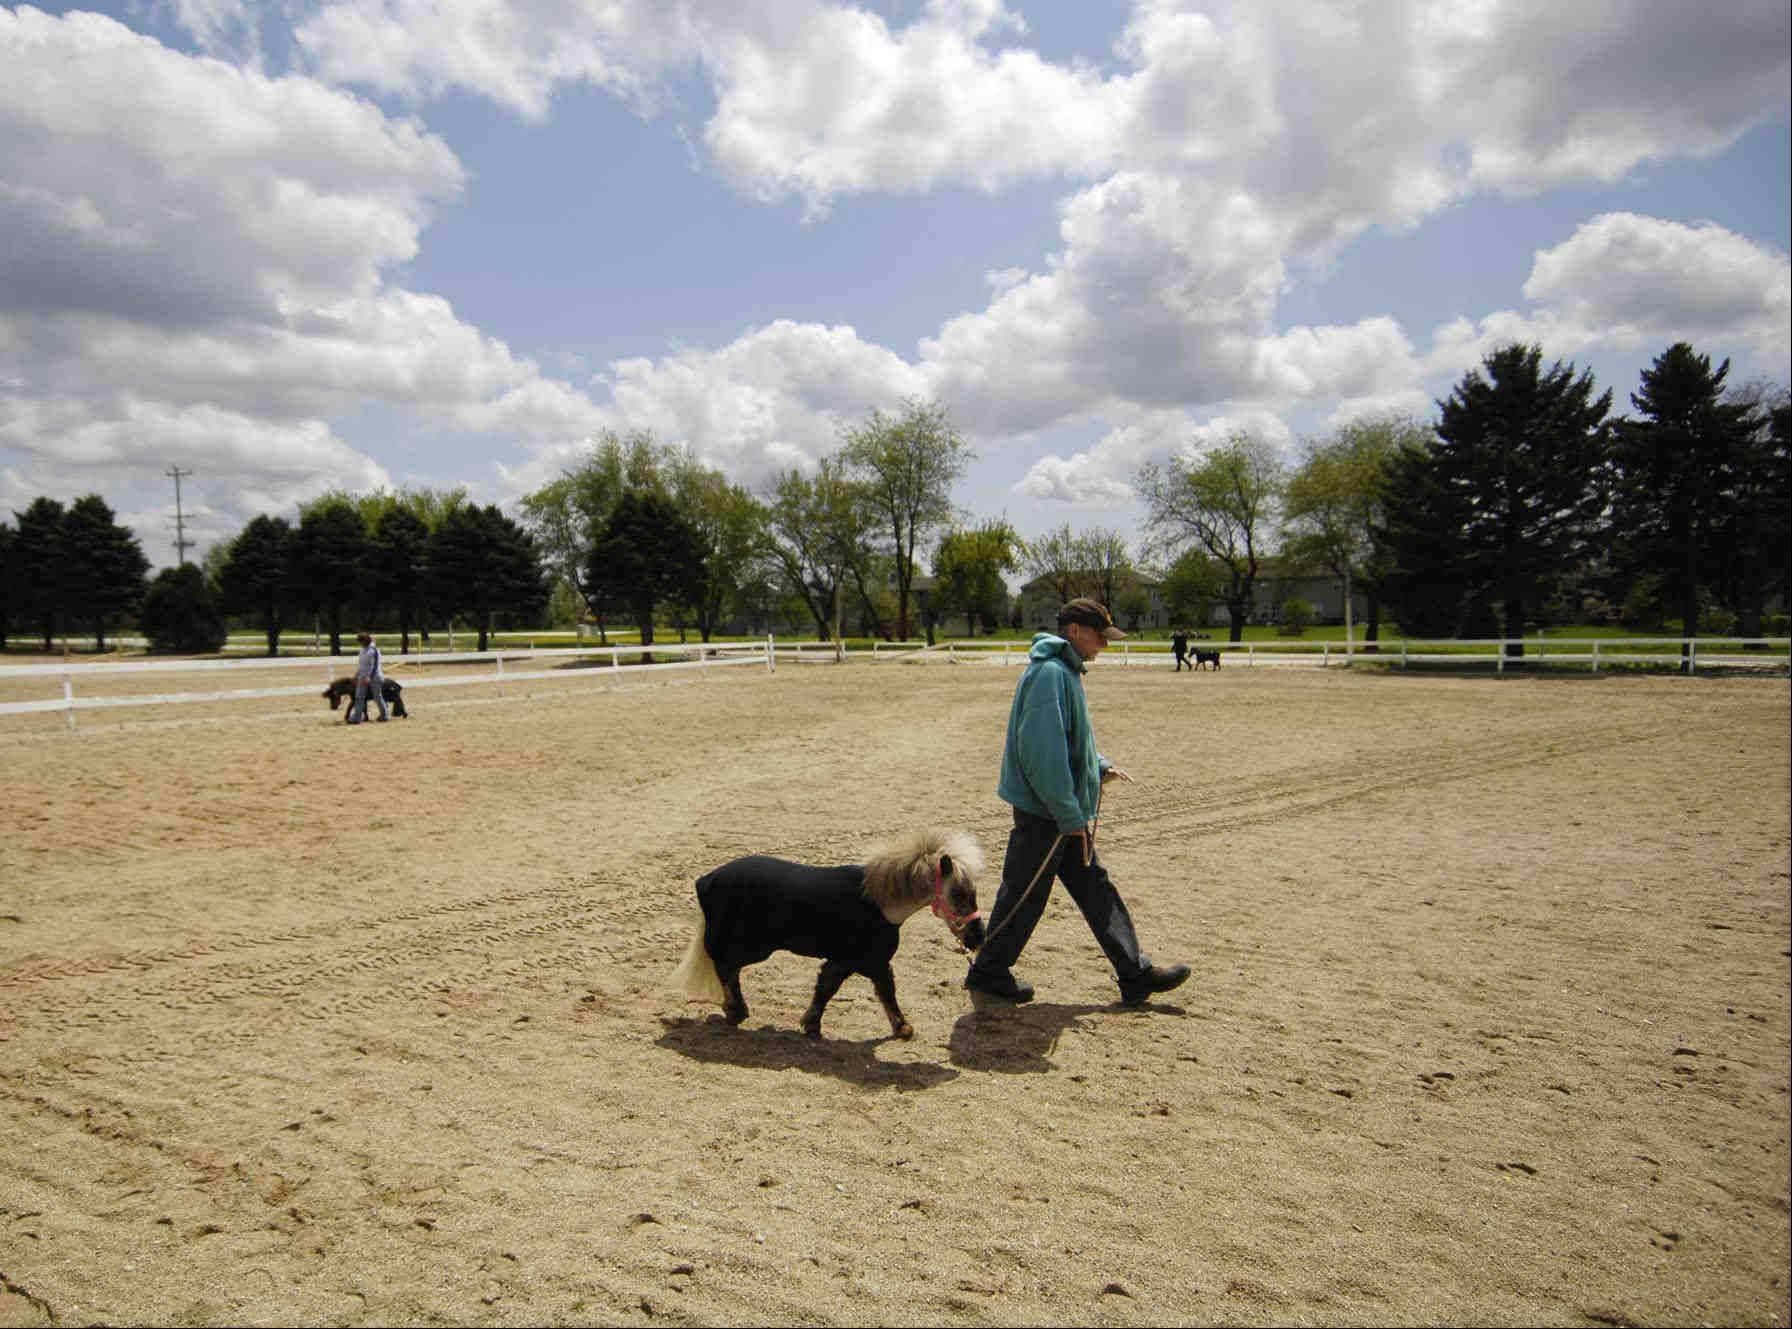 Tim Scotellaro of Crystal Lake is one of 43 volunteers working with the miniature horses of Mane In Heaven pet therapy organization at Dynasty Farm in Lake in the Hills.